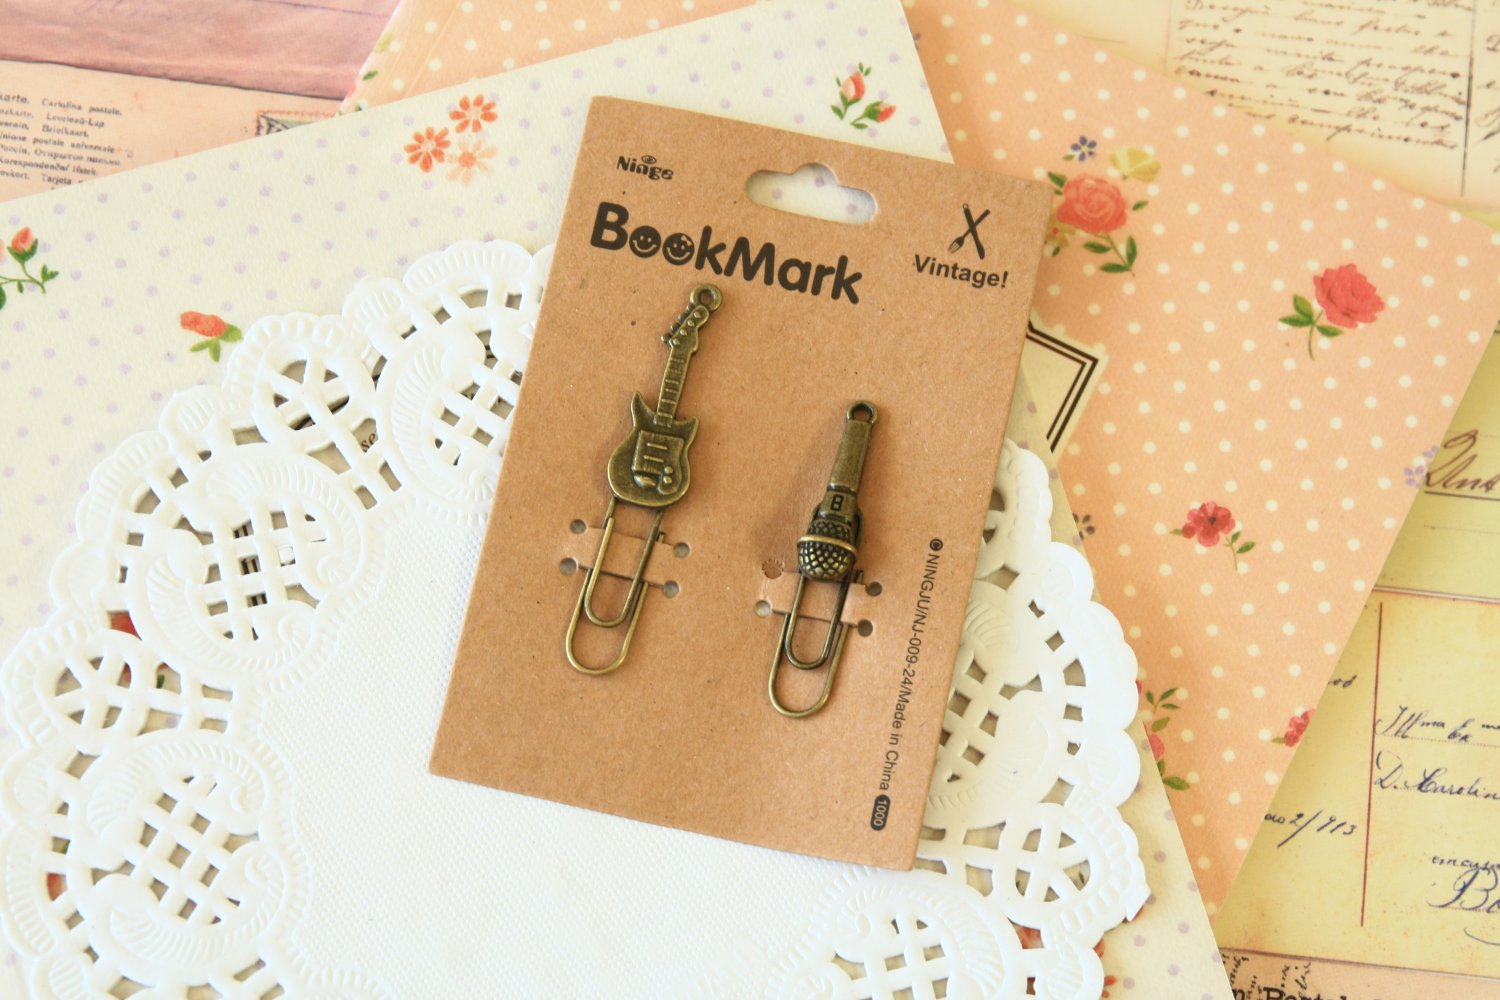 08 Guitar and Microphone Bookmark Vintage Style paper clips